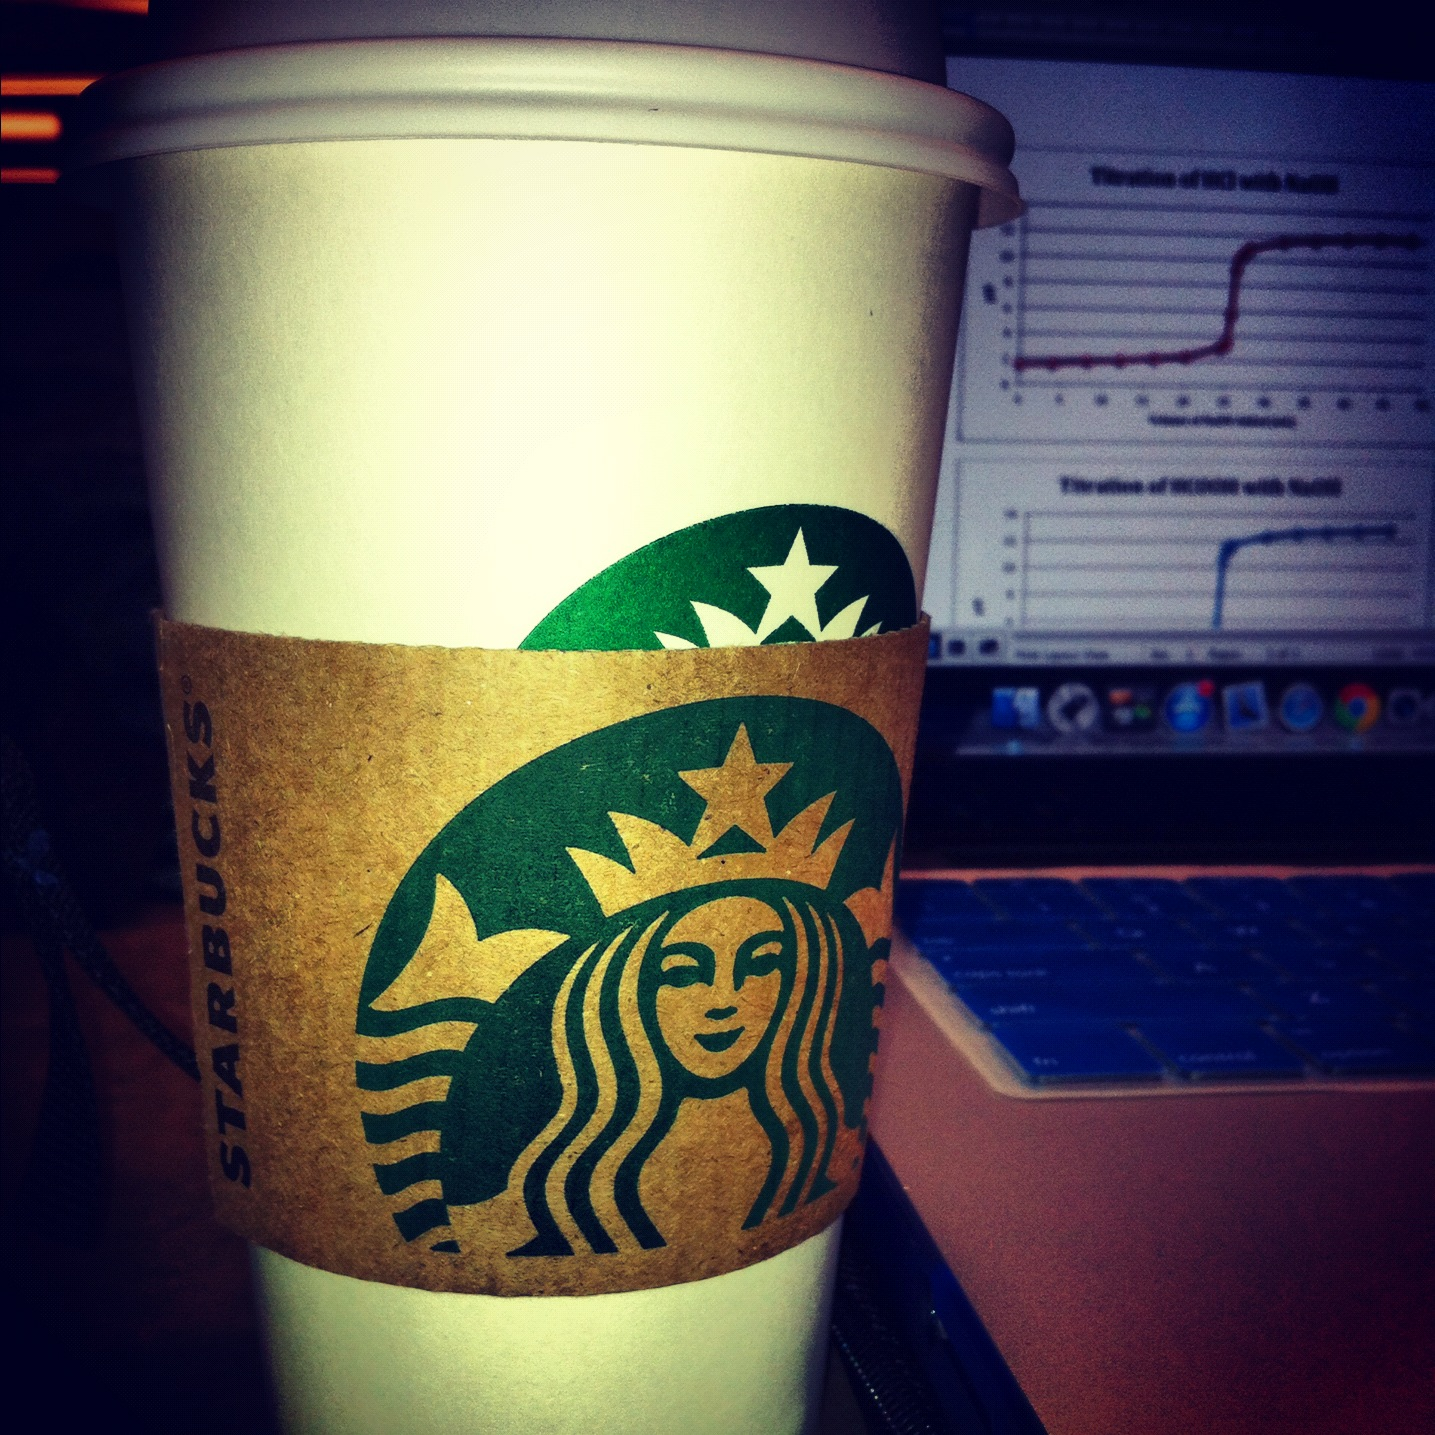 Picture of white Starbucks coffee cup.